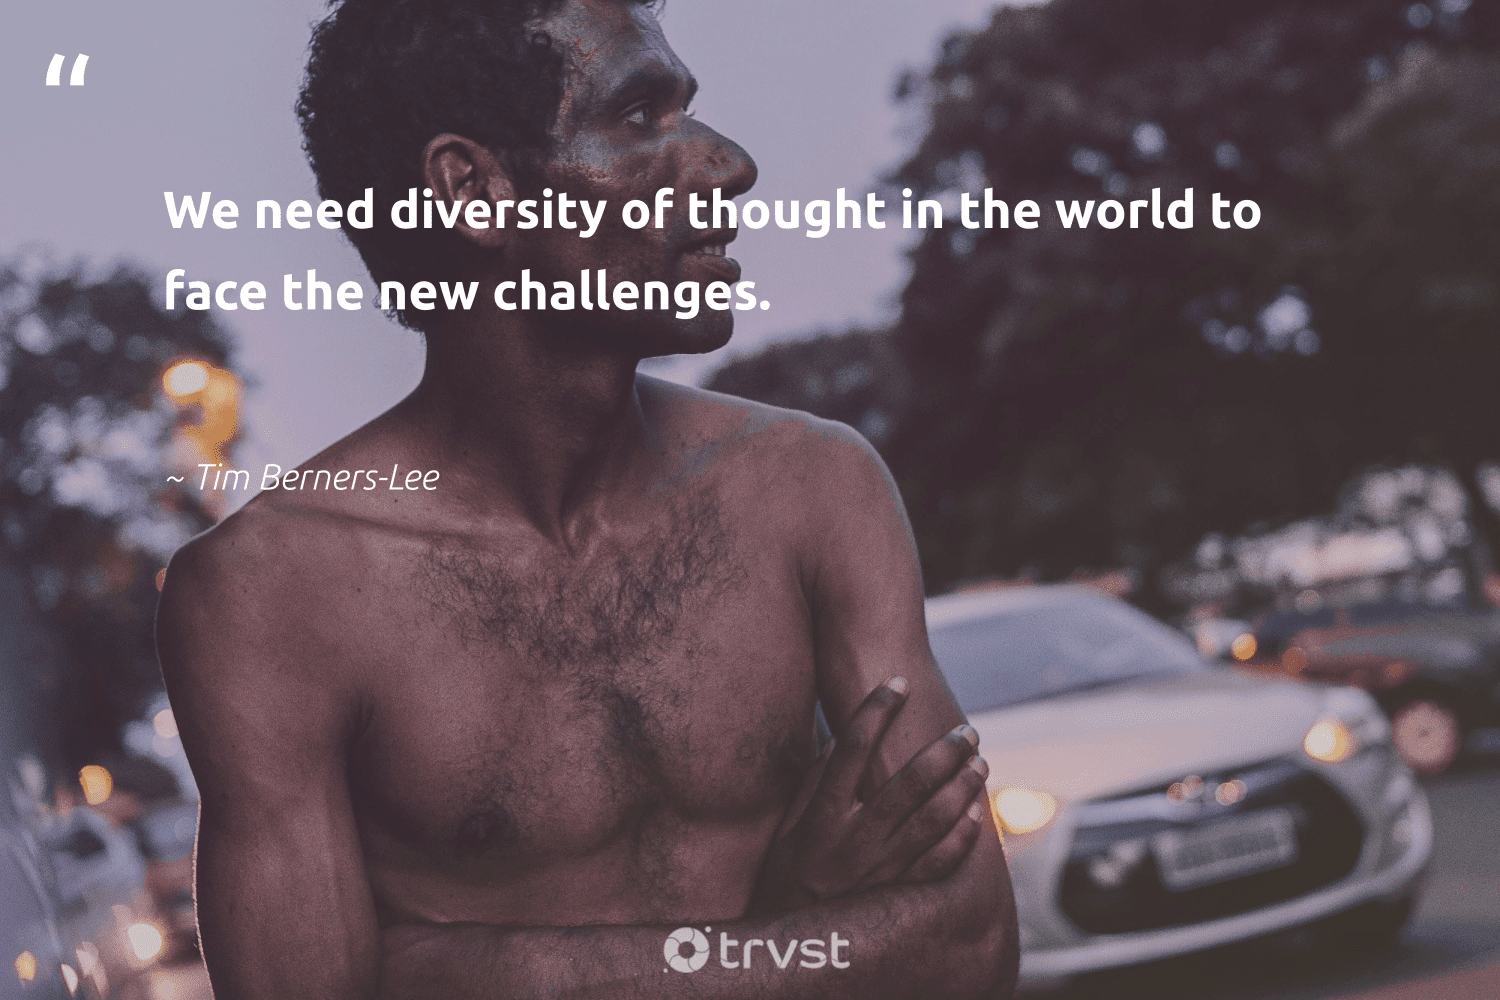 """""""We need diversity of thought in the world to face the new challenges.""""  - Tim Berners-Lee #trvst #quotes #diversity #representationmatters #discrimination #bethechange #socialchange #dosomething #inclusion #weareallone #giveback #impact"""